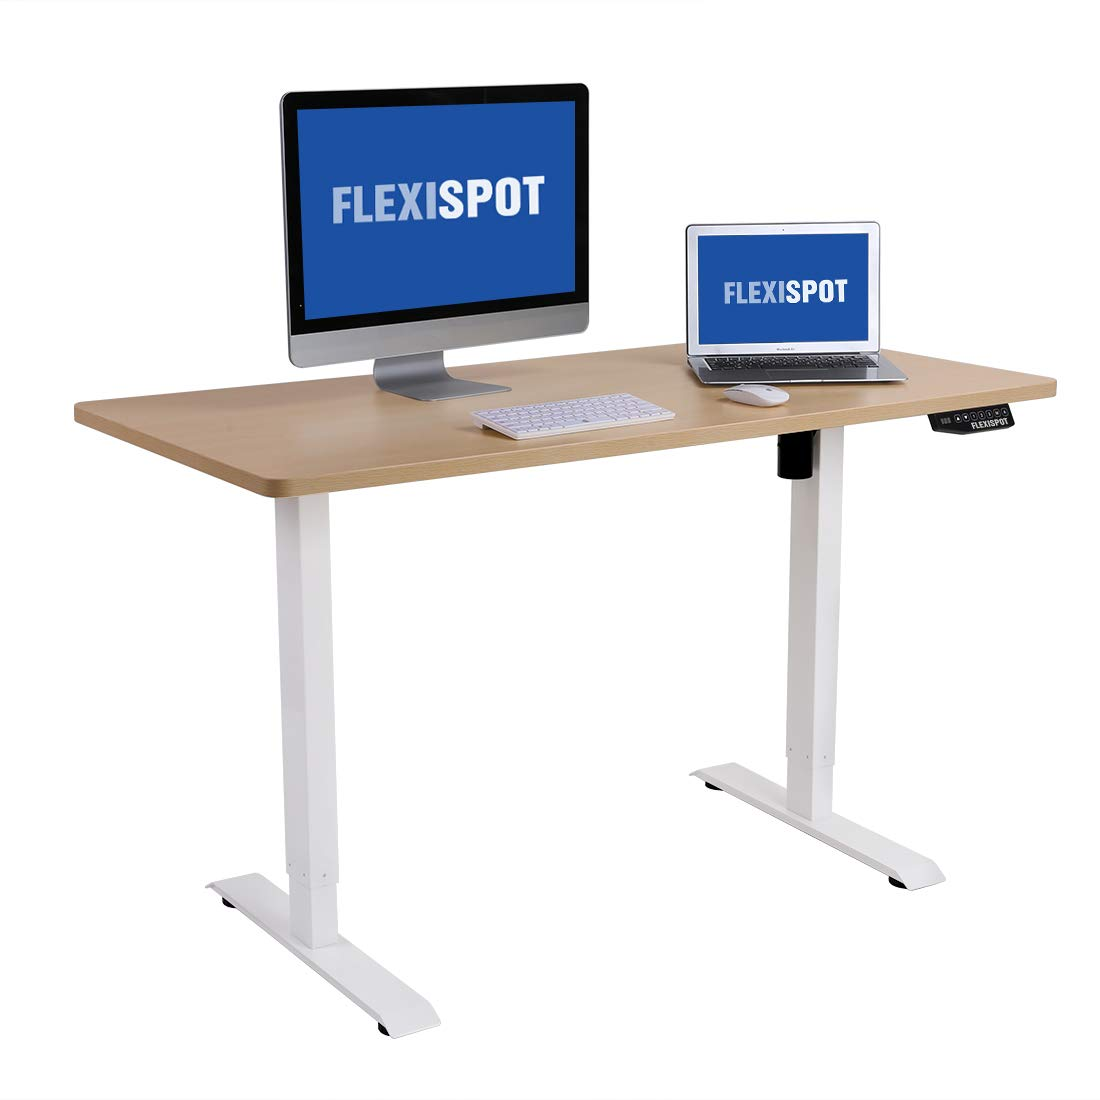 "Flexispot Electric Height Adjustable Desk with Desktop, 48 x 30 Inches, Ergonomic Memory Controller Standing Desk Stand Up Desk Workstation (White Frame + 48"" Maple Top)"